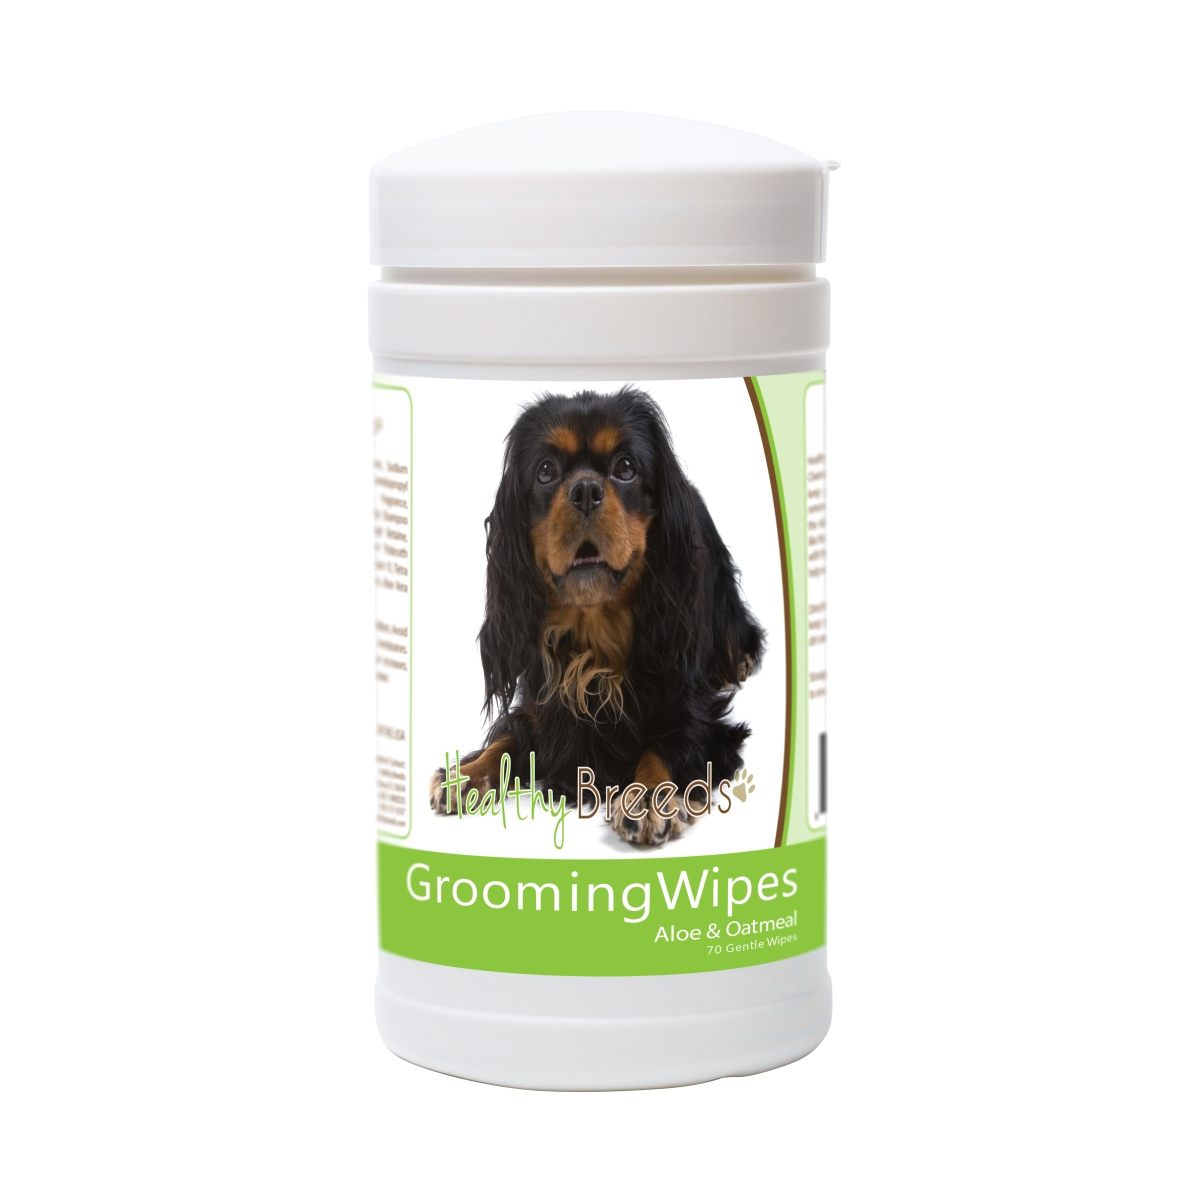 Healthy Breeds 840235182252 English Toy Spaniel Grooming Wipes - 70 Count